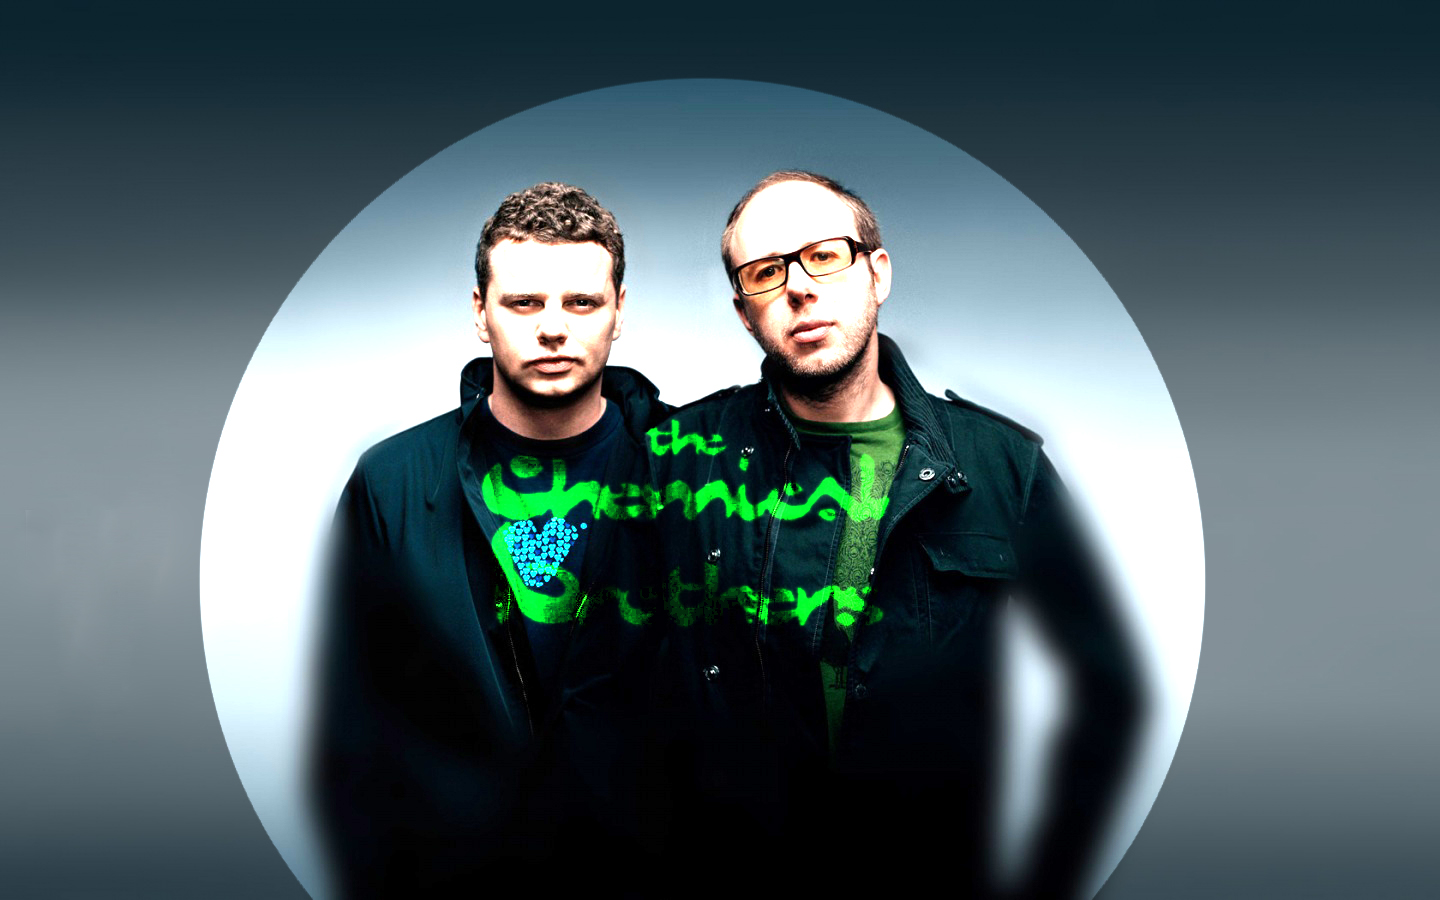 The Chemical Brothers записали пластинку под названием «Born In The Echoes».